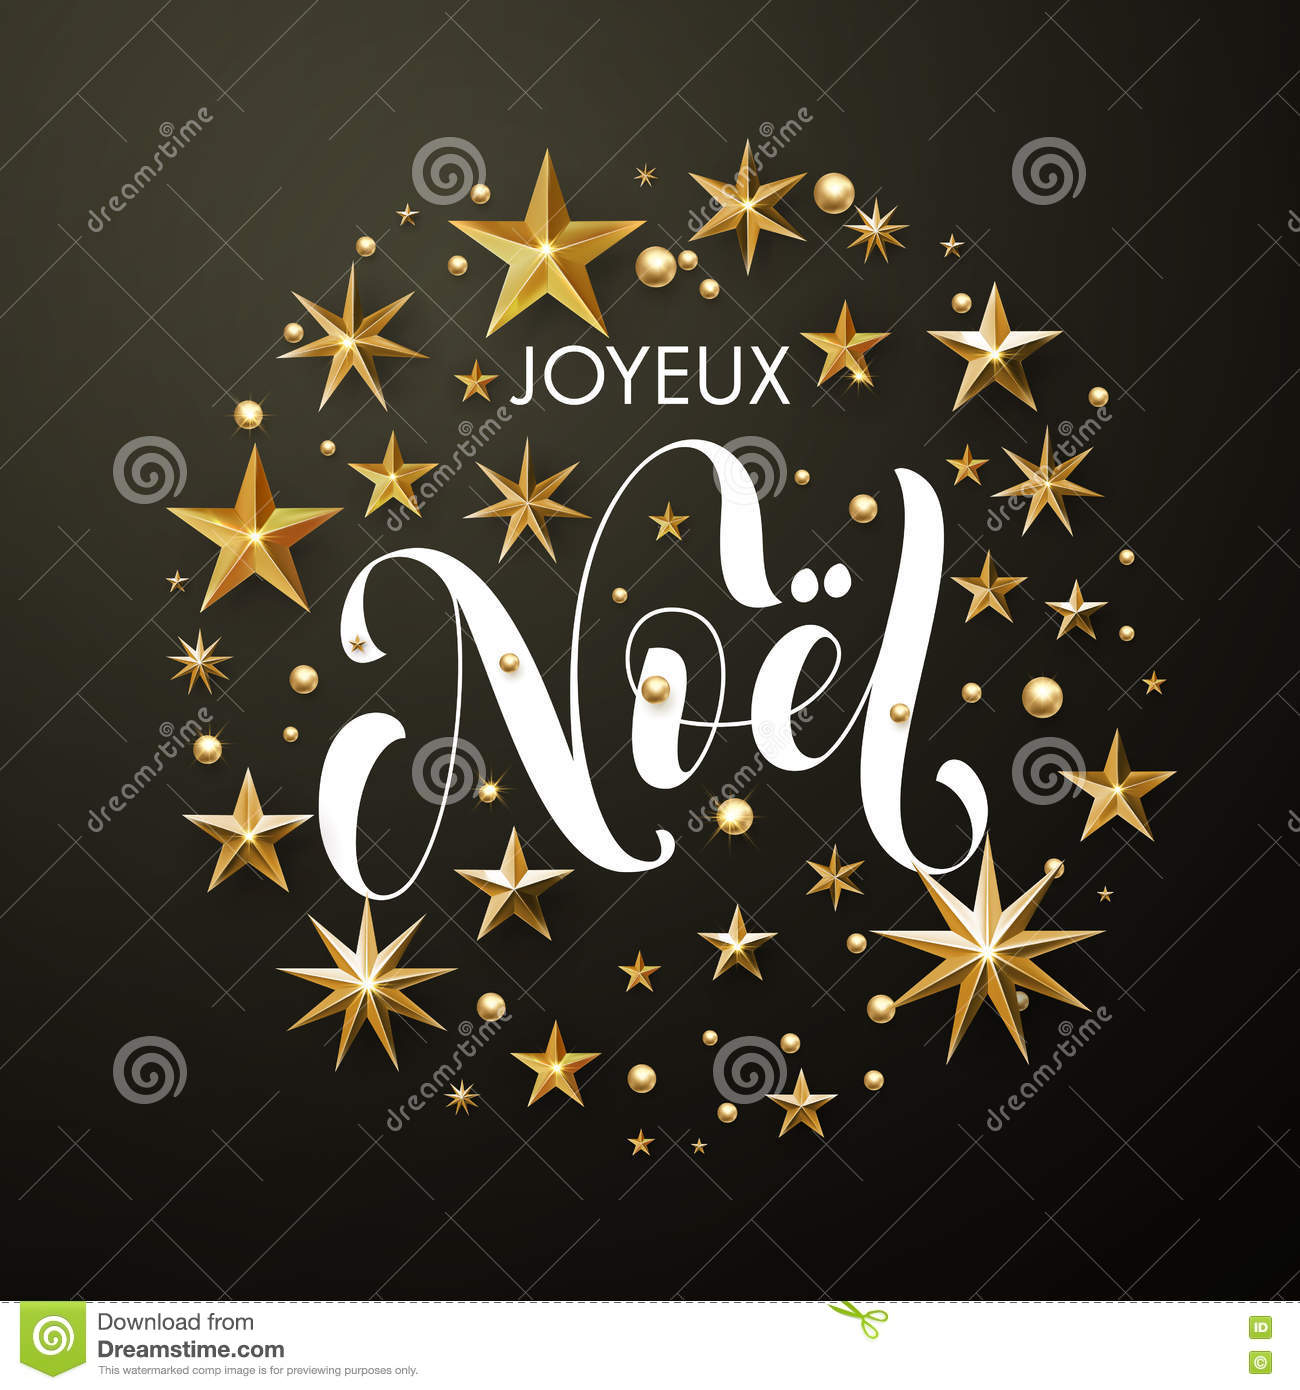 download merry christmas french joyeux noel gold glitter stars greeting card stock illustration illustration of - Merry Christmas French